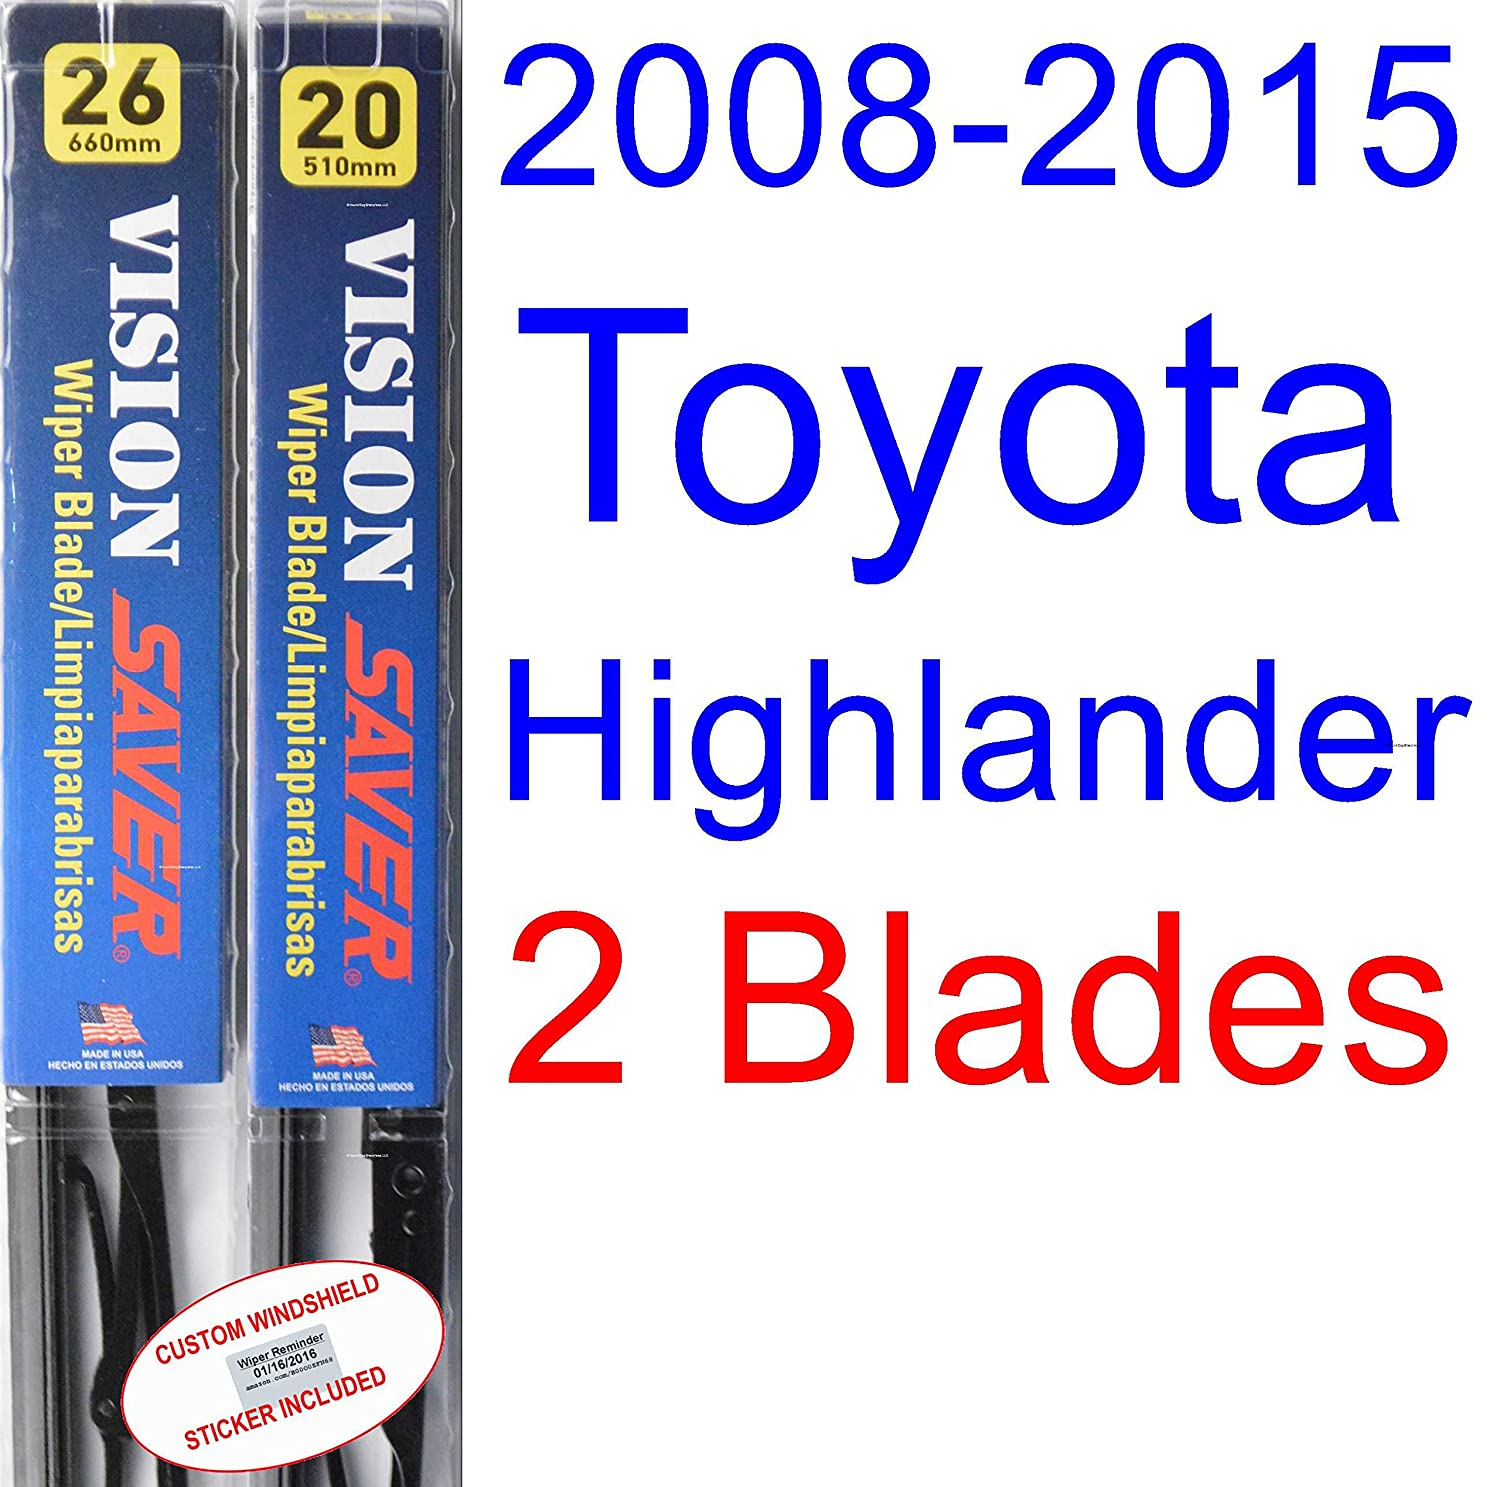 2008-2015 Toyota Highlander Replacement Wiper Blade Set/Kit (Set of 2 Blades) (Saver Automotive Products-Vision Saver) (2009,2010,2011,2012,2013,2014)